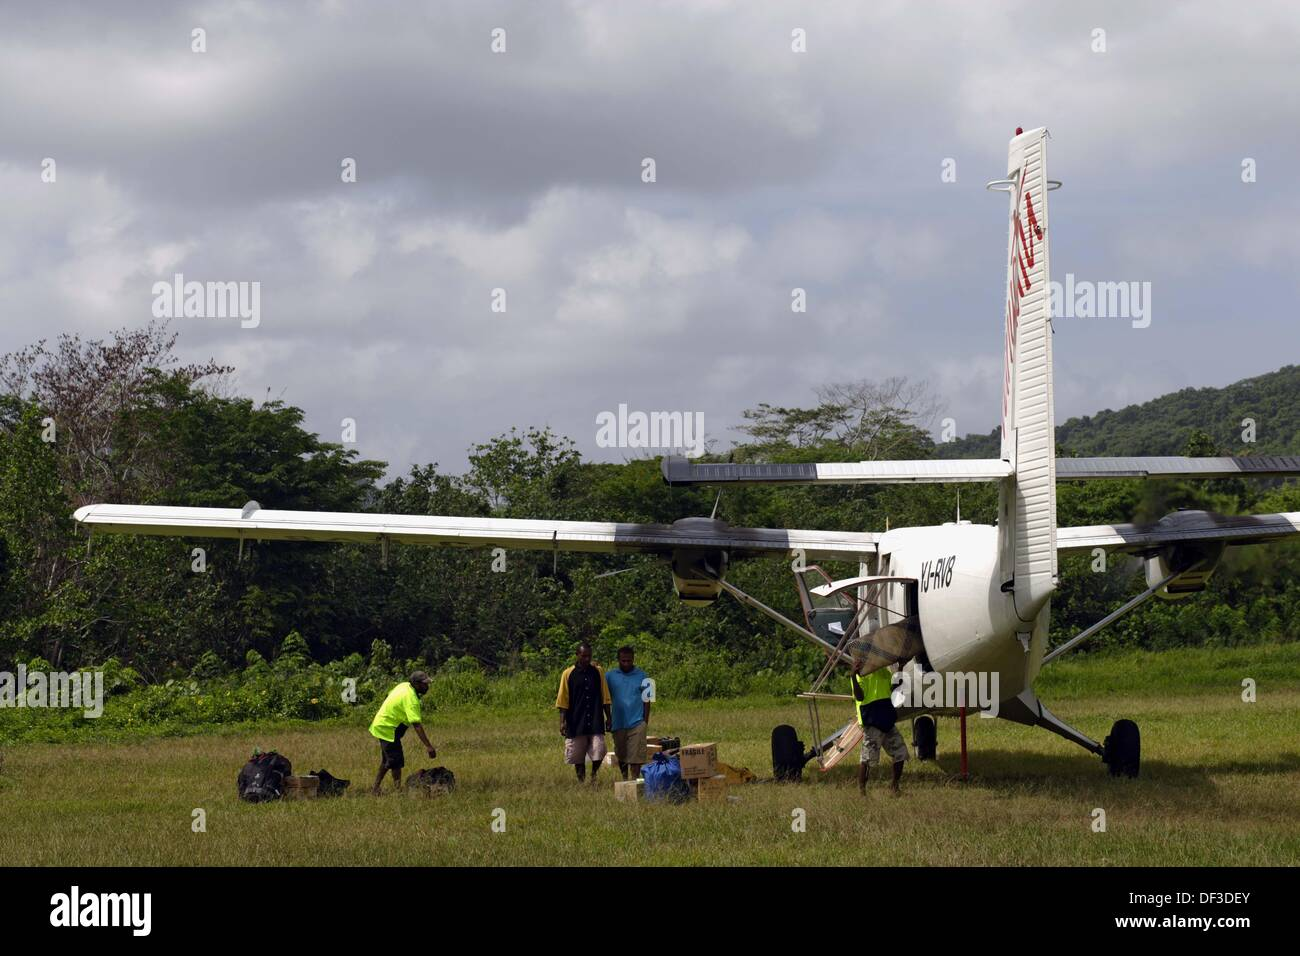 Men offloading and onloading luggage and cargo from a Twin Otter aircraft standing on the grass tarmc of the airport of Sola, - Stock Image